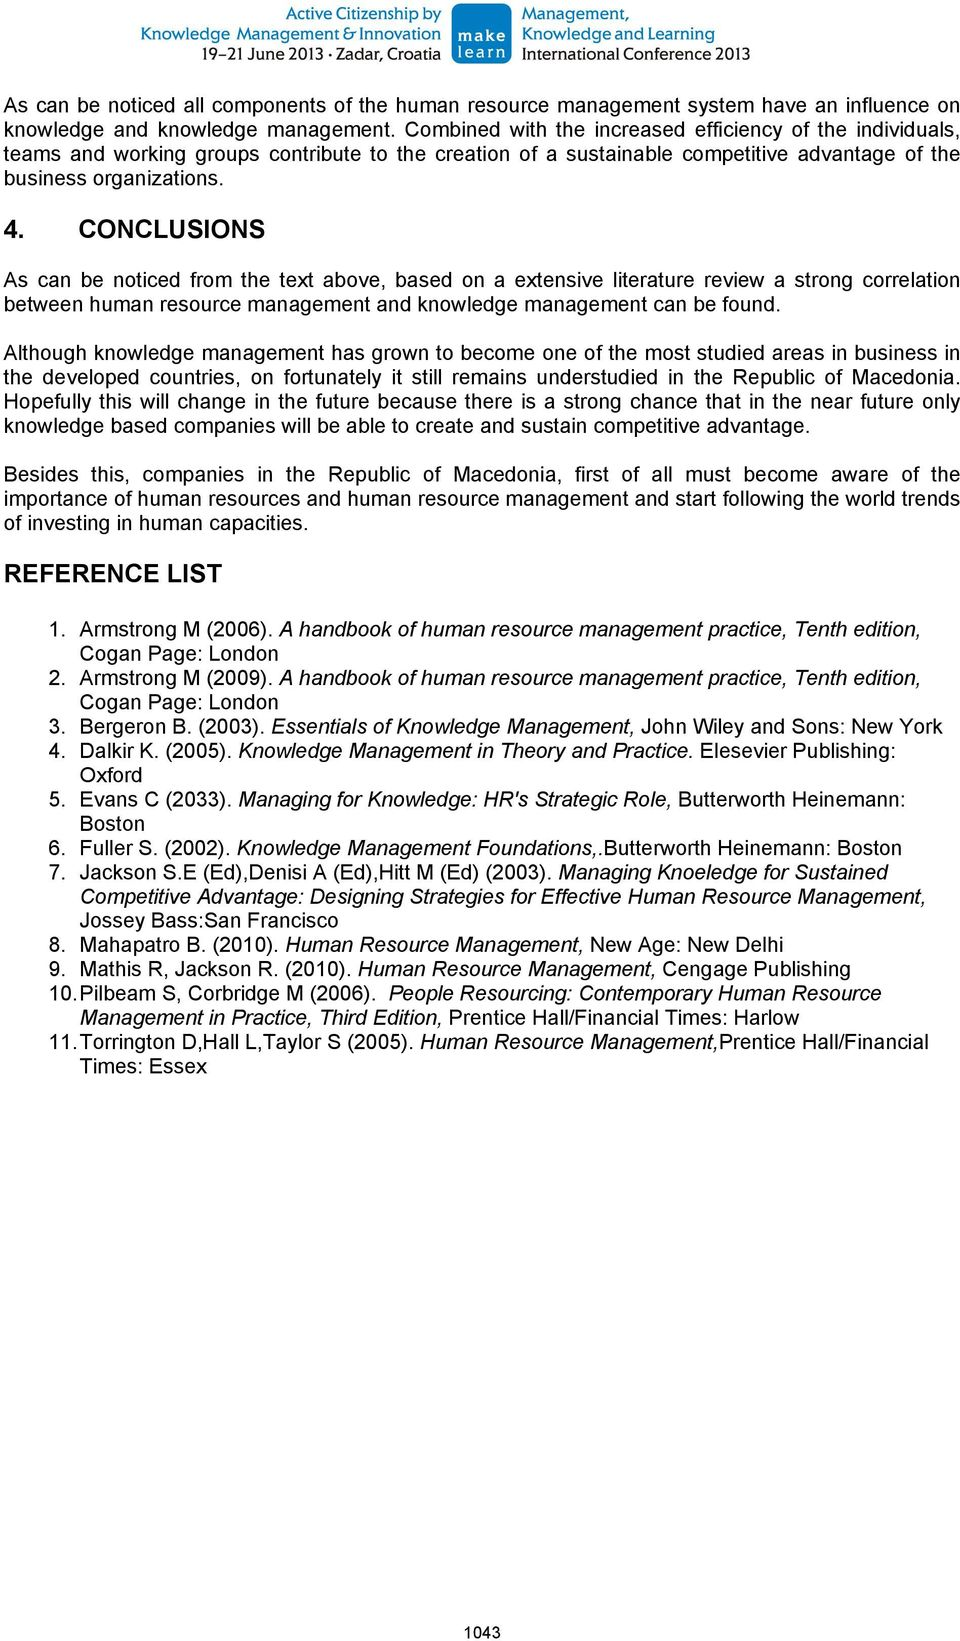 HUMAN RESOURCES AND KNOWLEDGE MANAGEMENT - PDF